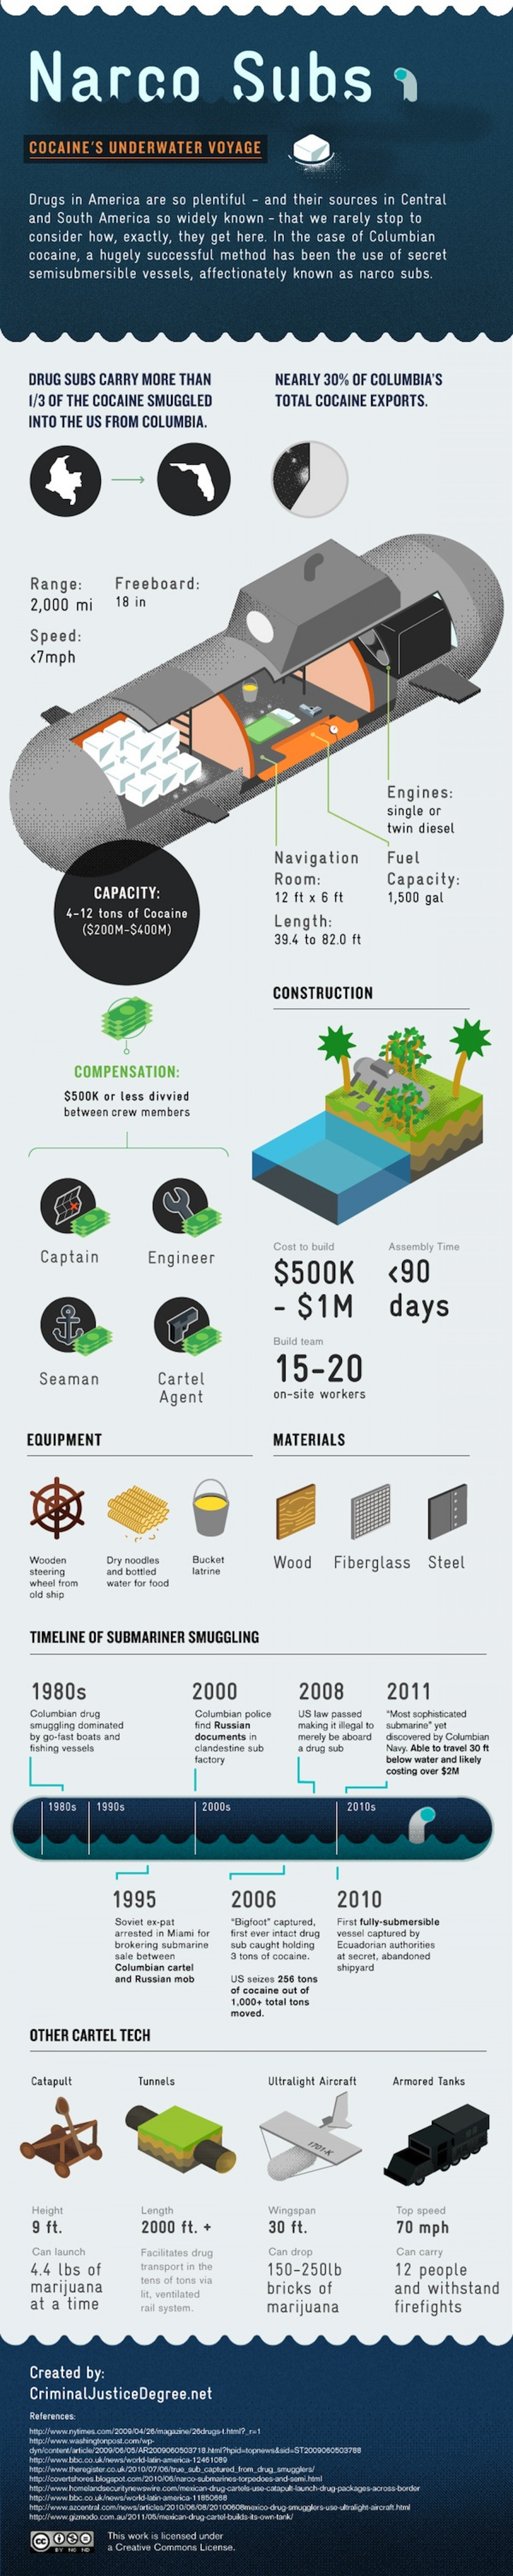 Smuggling Cocaine With a Submarine  Infographic